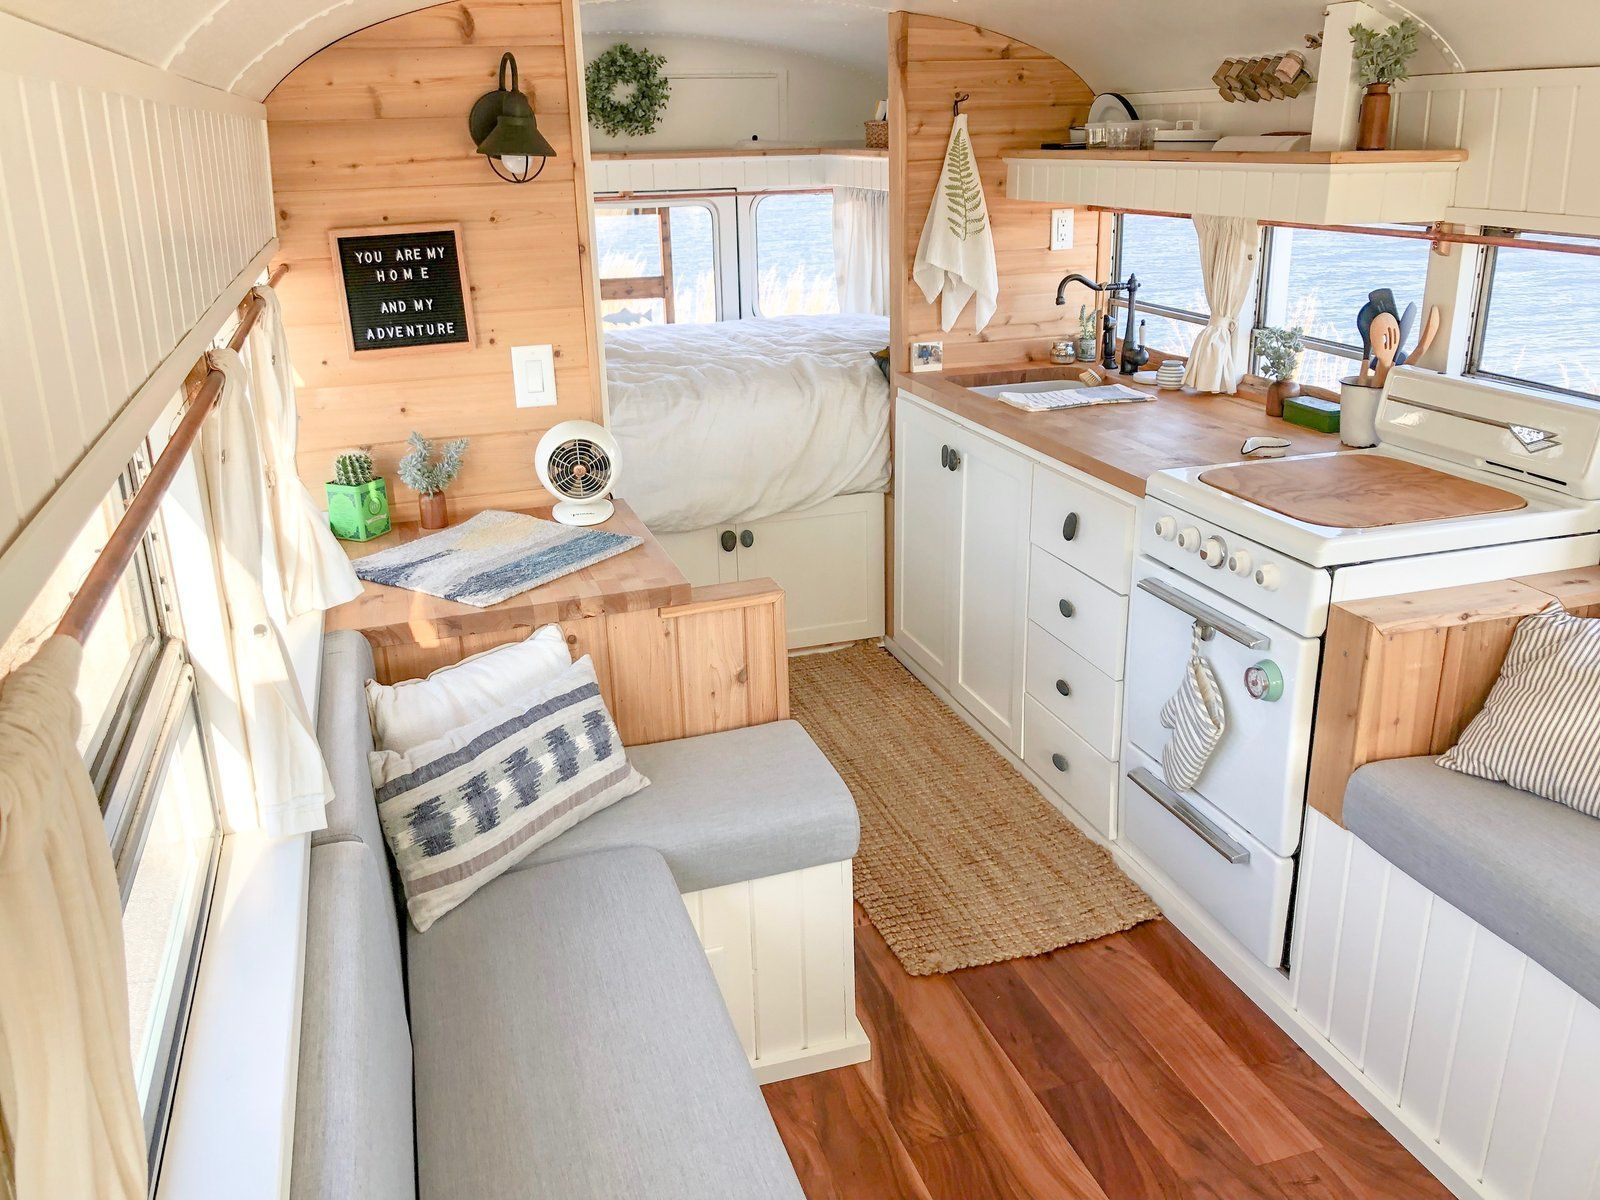 , Photo 7 of 9 in Before & After: A Michigan Couple Turn a School Bus Into an Adventure Mobile – Dwell #bus #couple #Michigan #photo #School, Travel Couple, Travel Couple